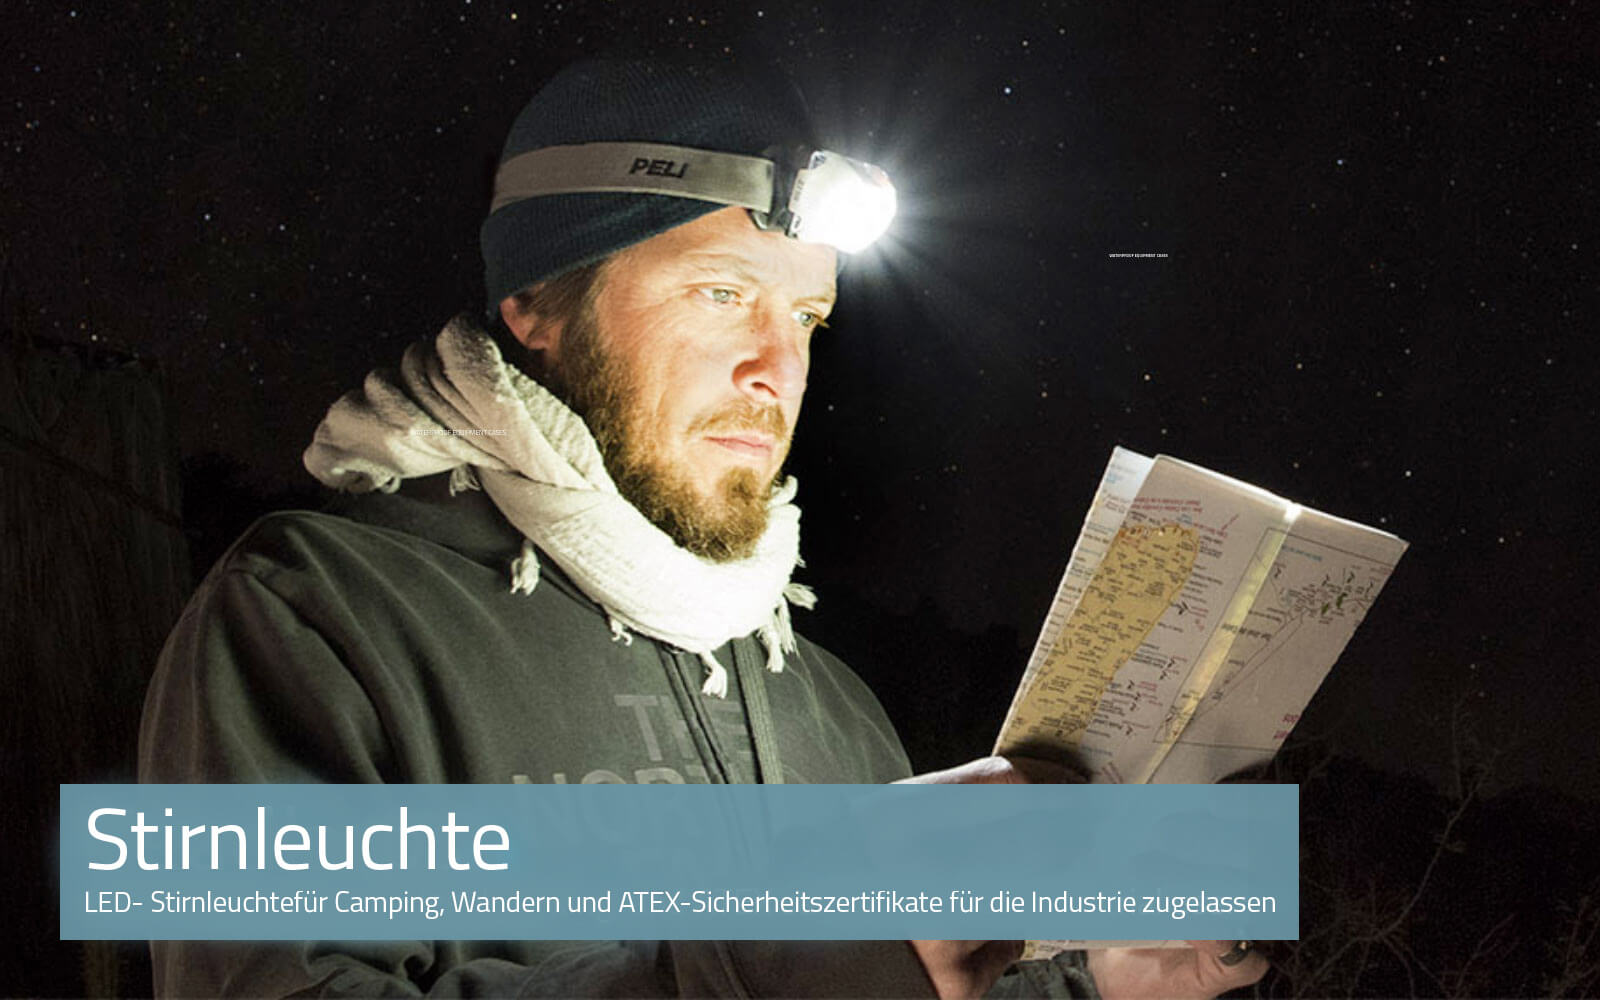 LED headlamps for camping, hiking, and ATEX safety-certified industrial use.